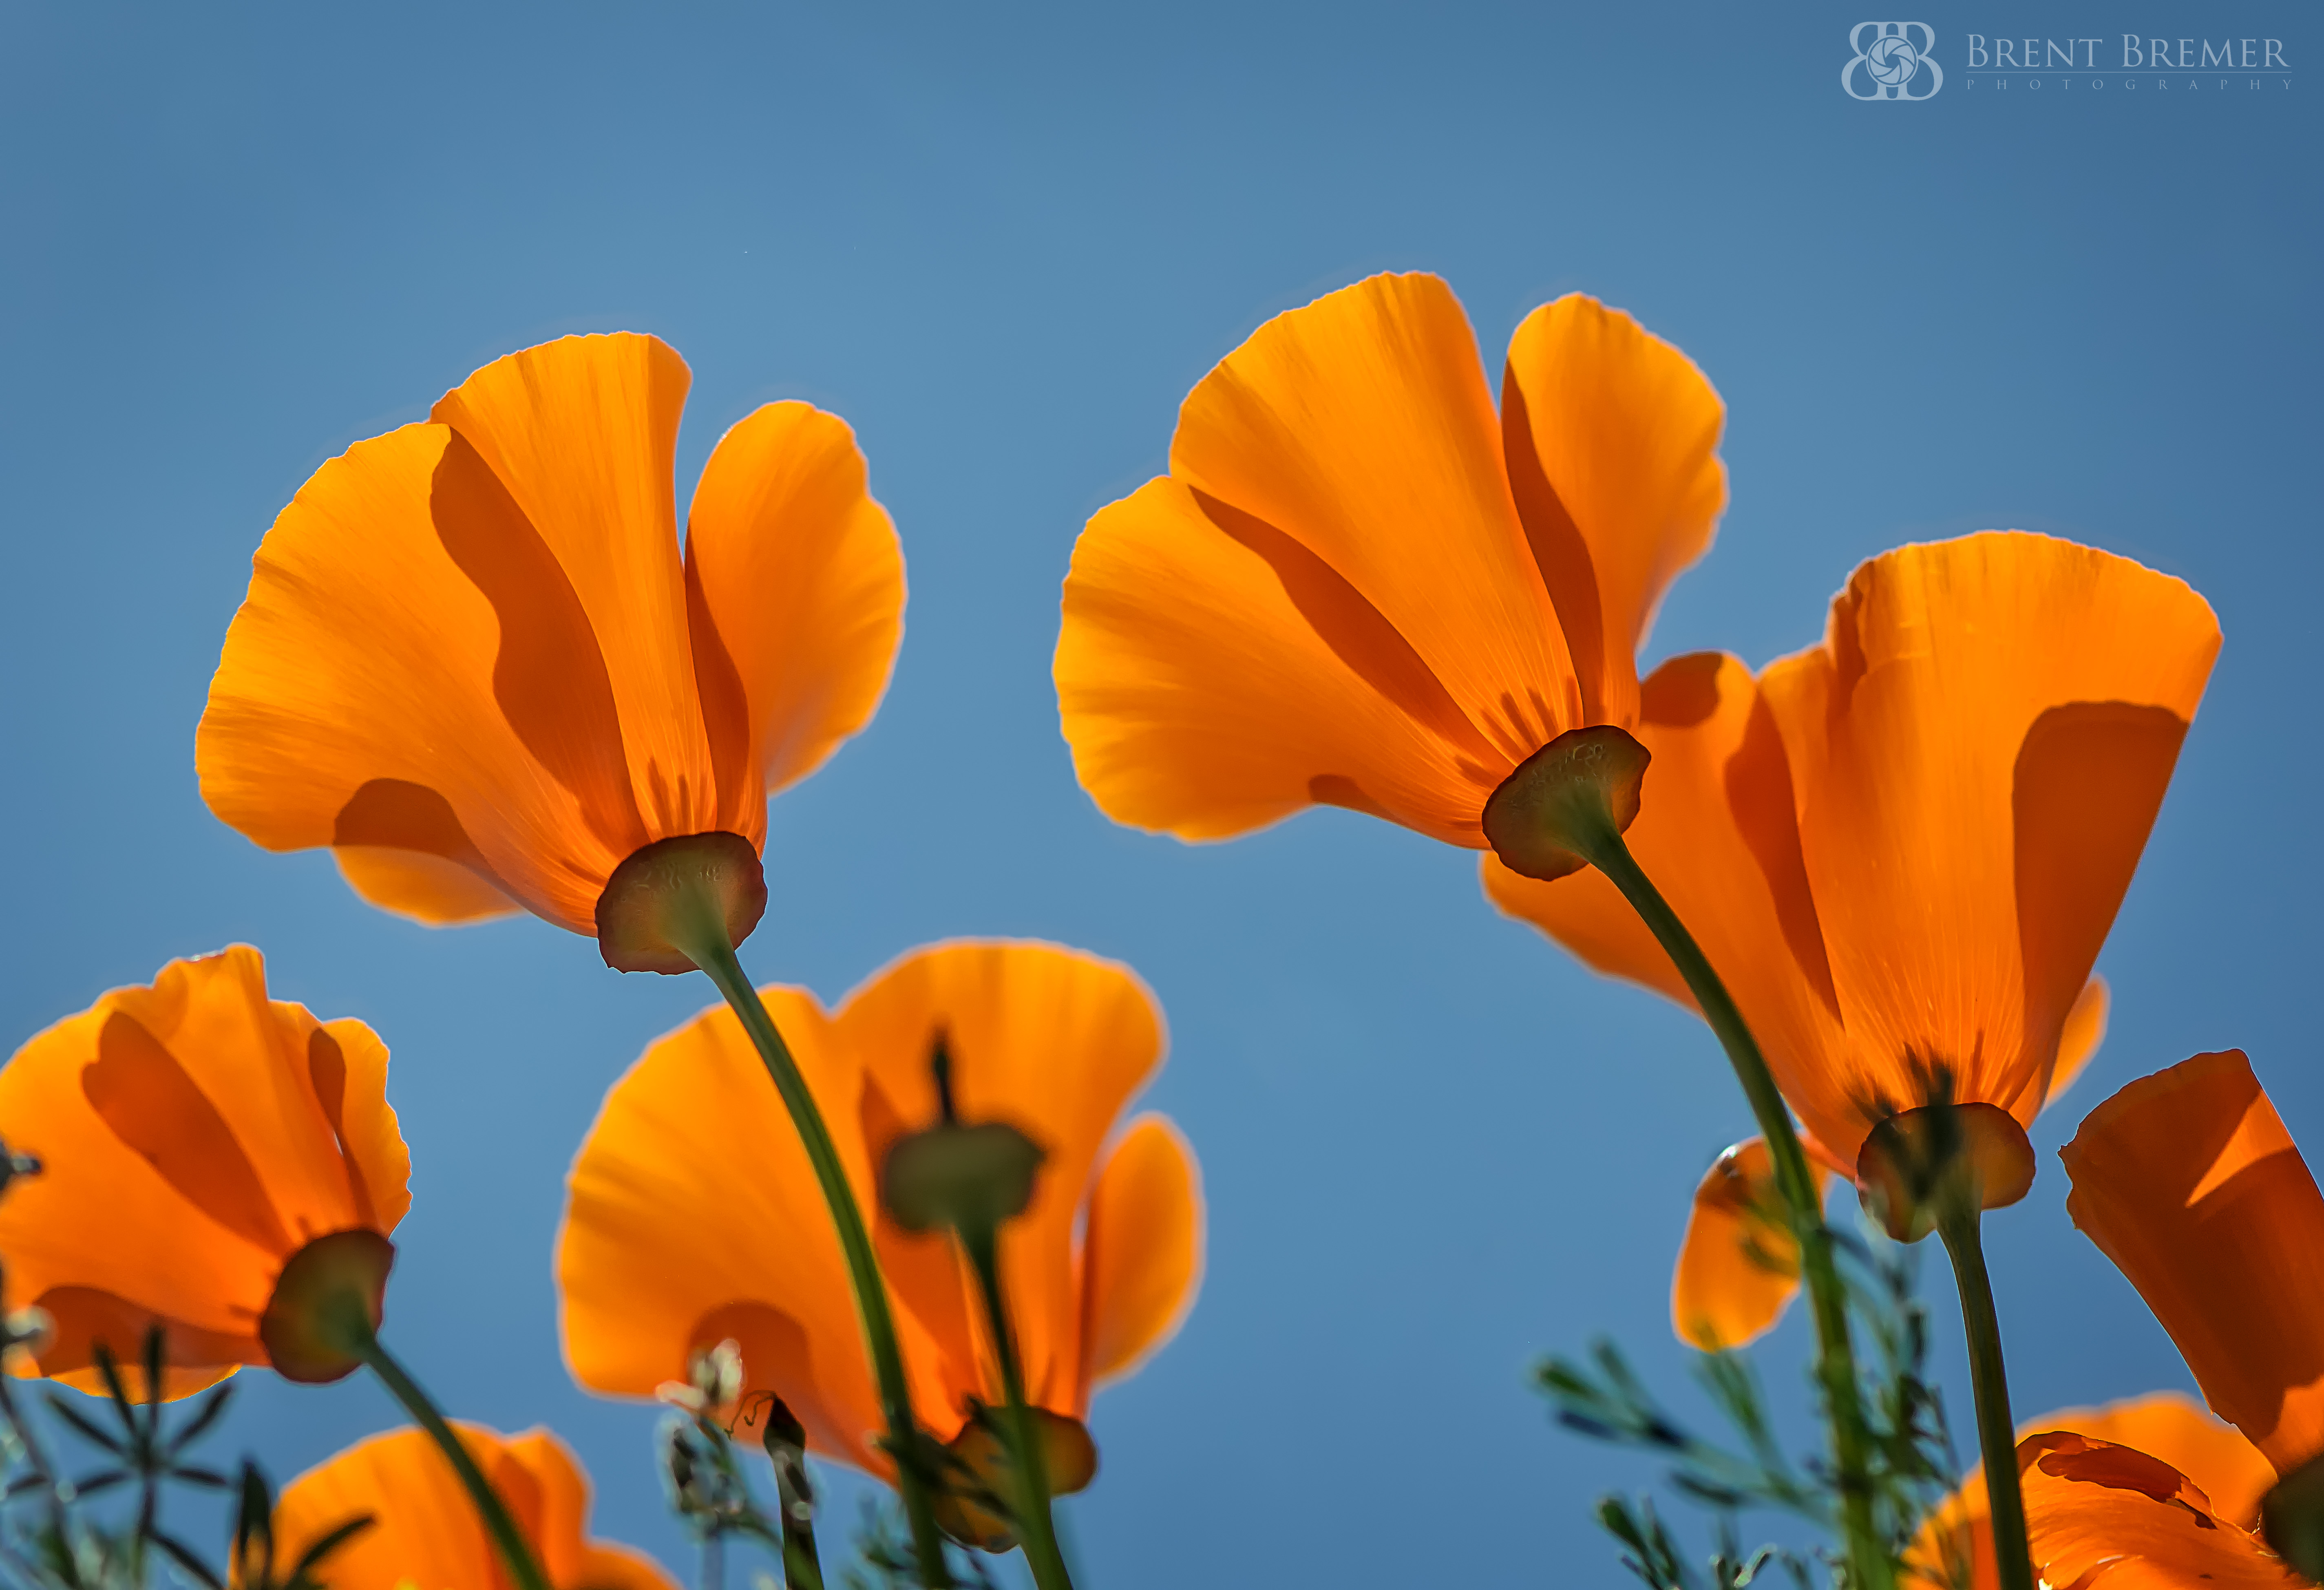 From Beneath the Poppies